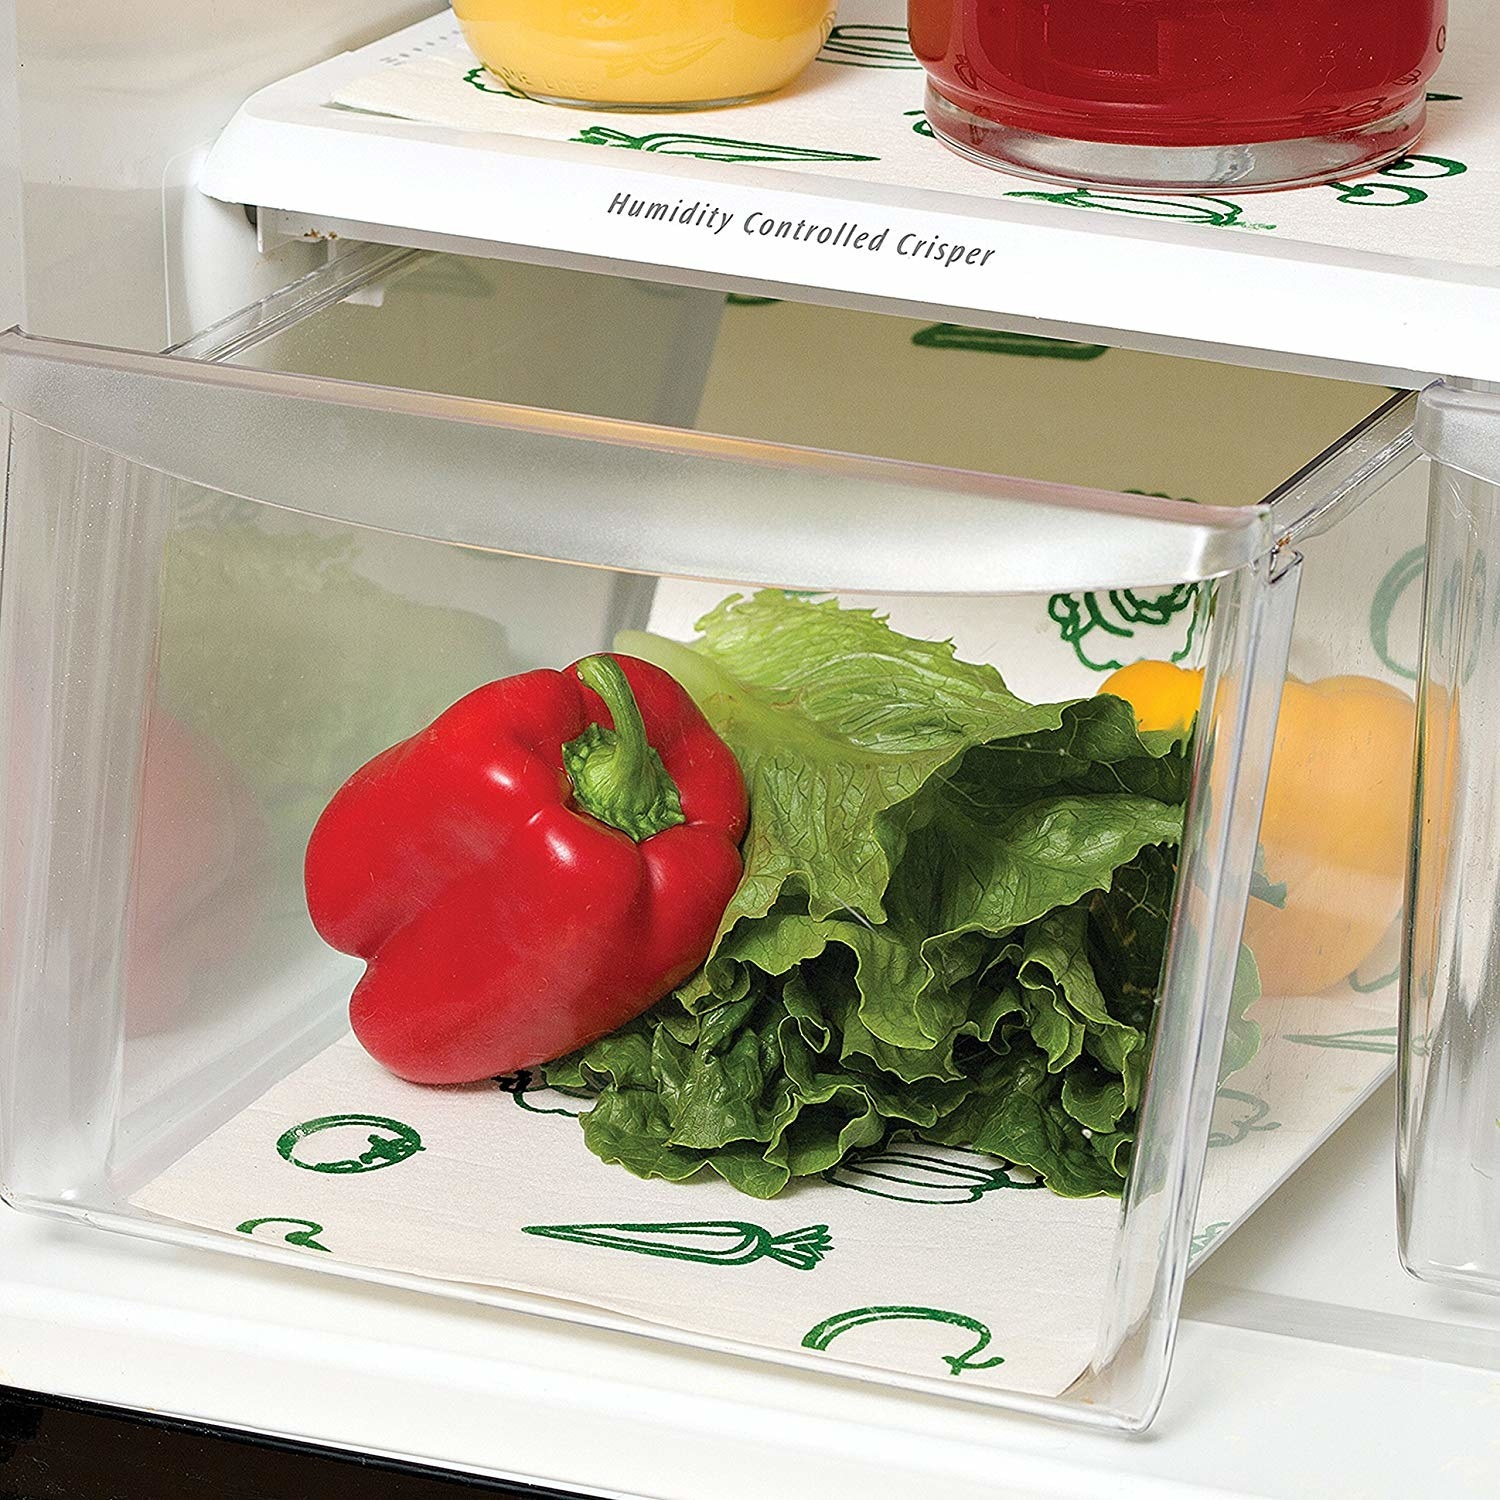 The shelf liners being used with to keep peppers and lettuce fresh in the fridge